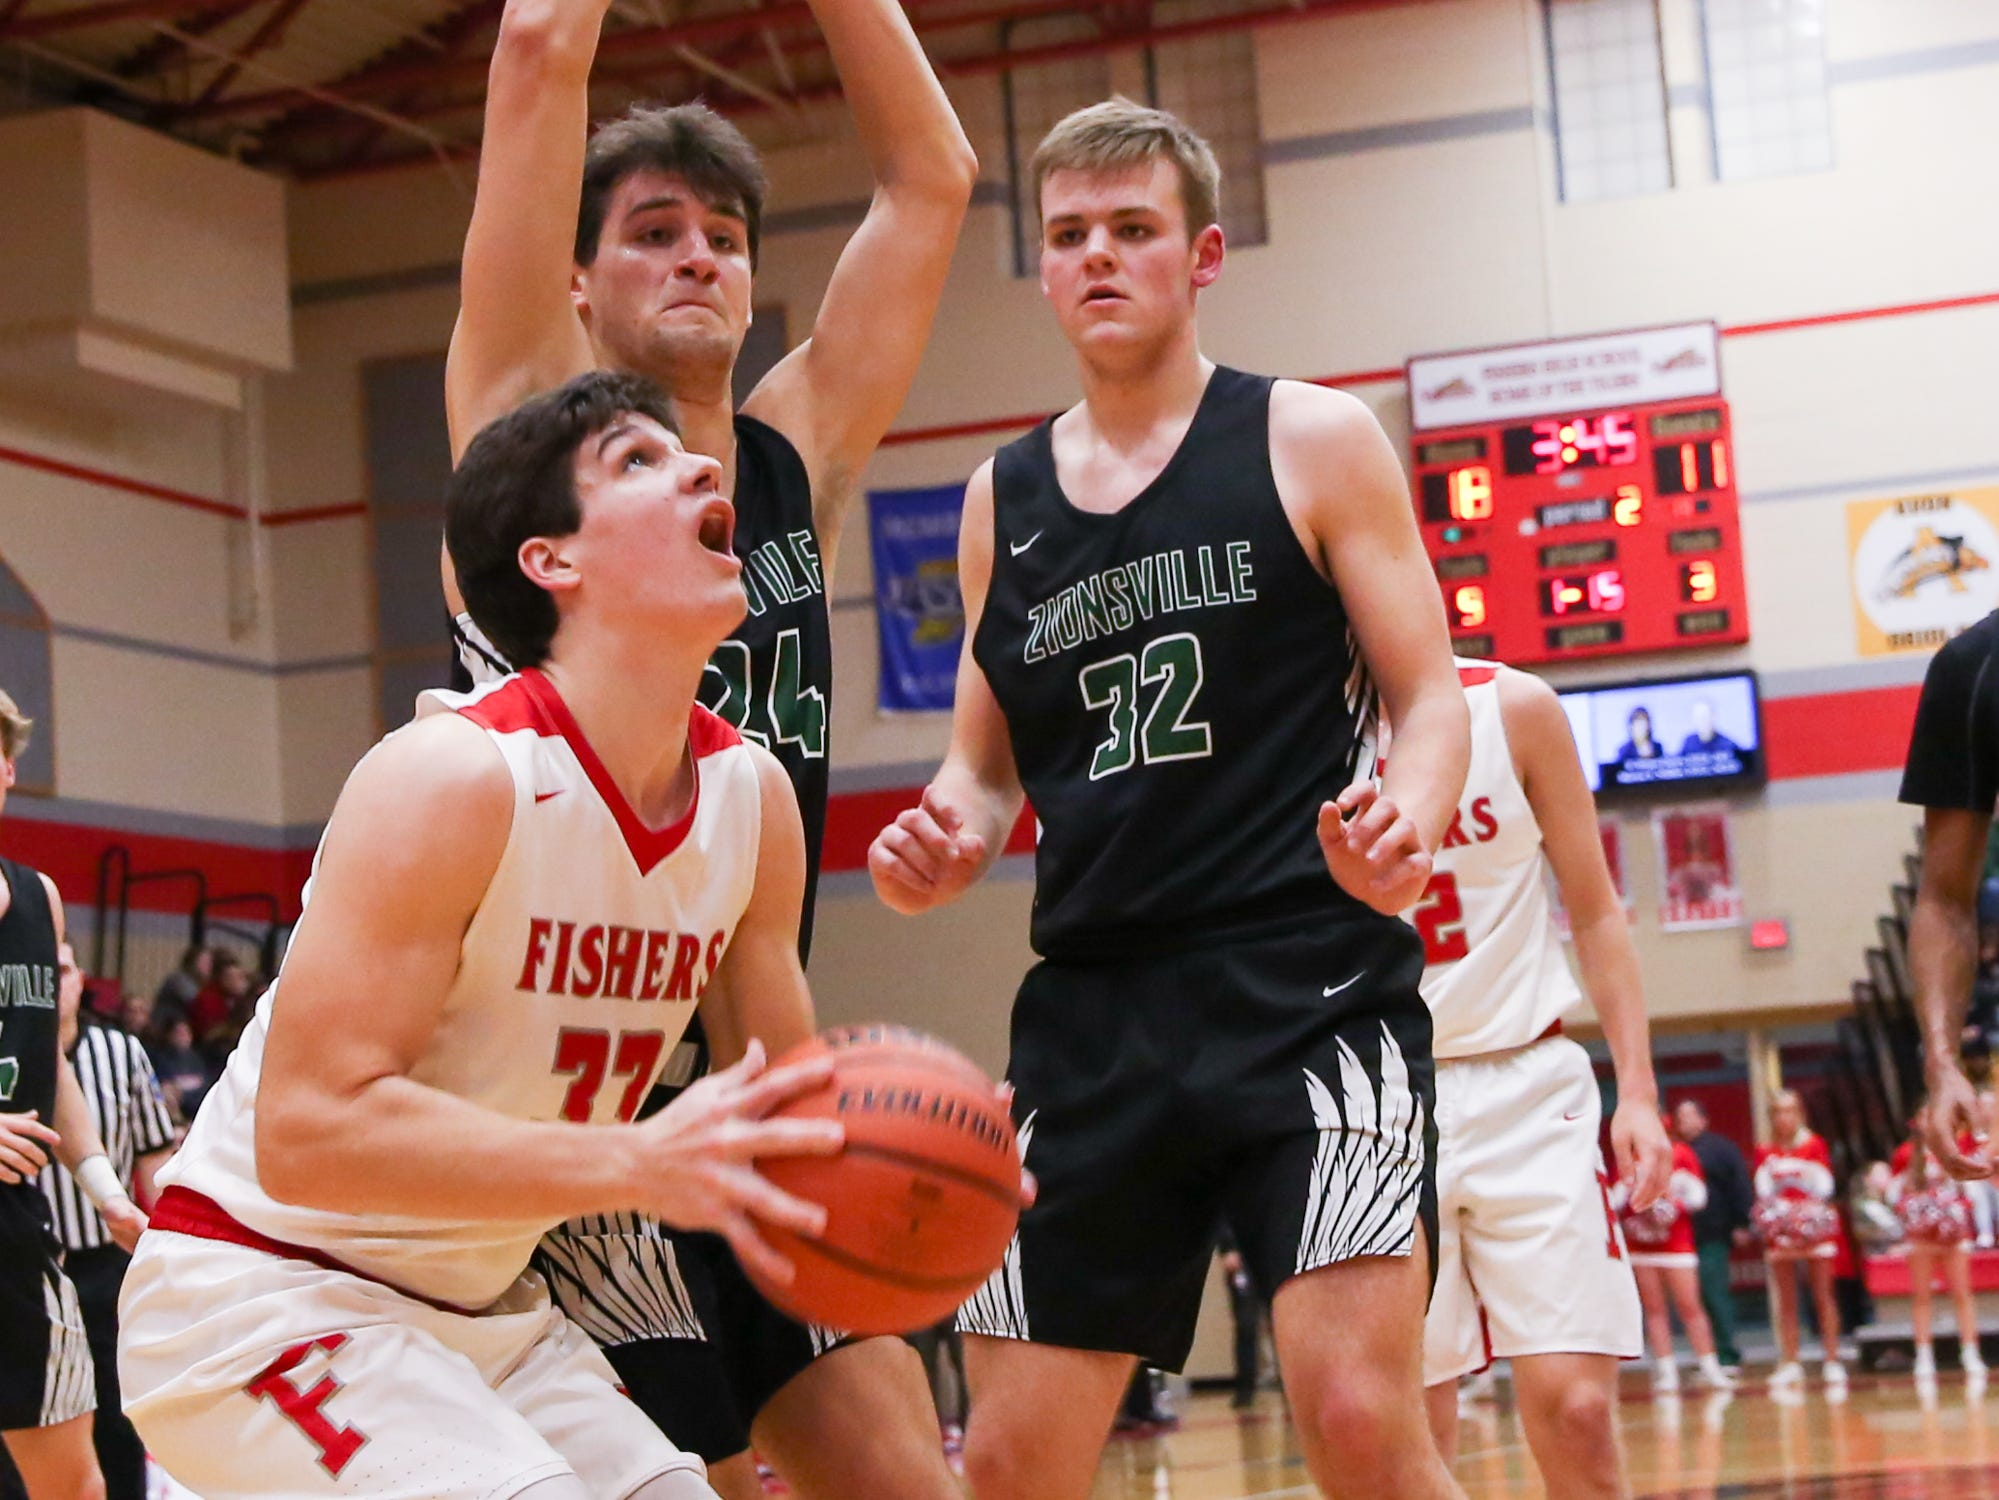 Fisher's Jeffrey Simmons (33) attempts a lay up during the first half of Zionsville vs. Fishers high school boys varsity basketball game held at Fishers High School, February 15, 2019.